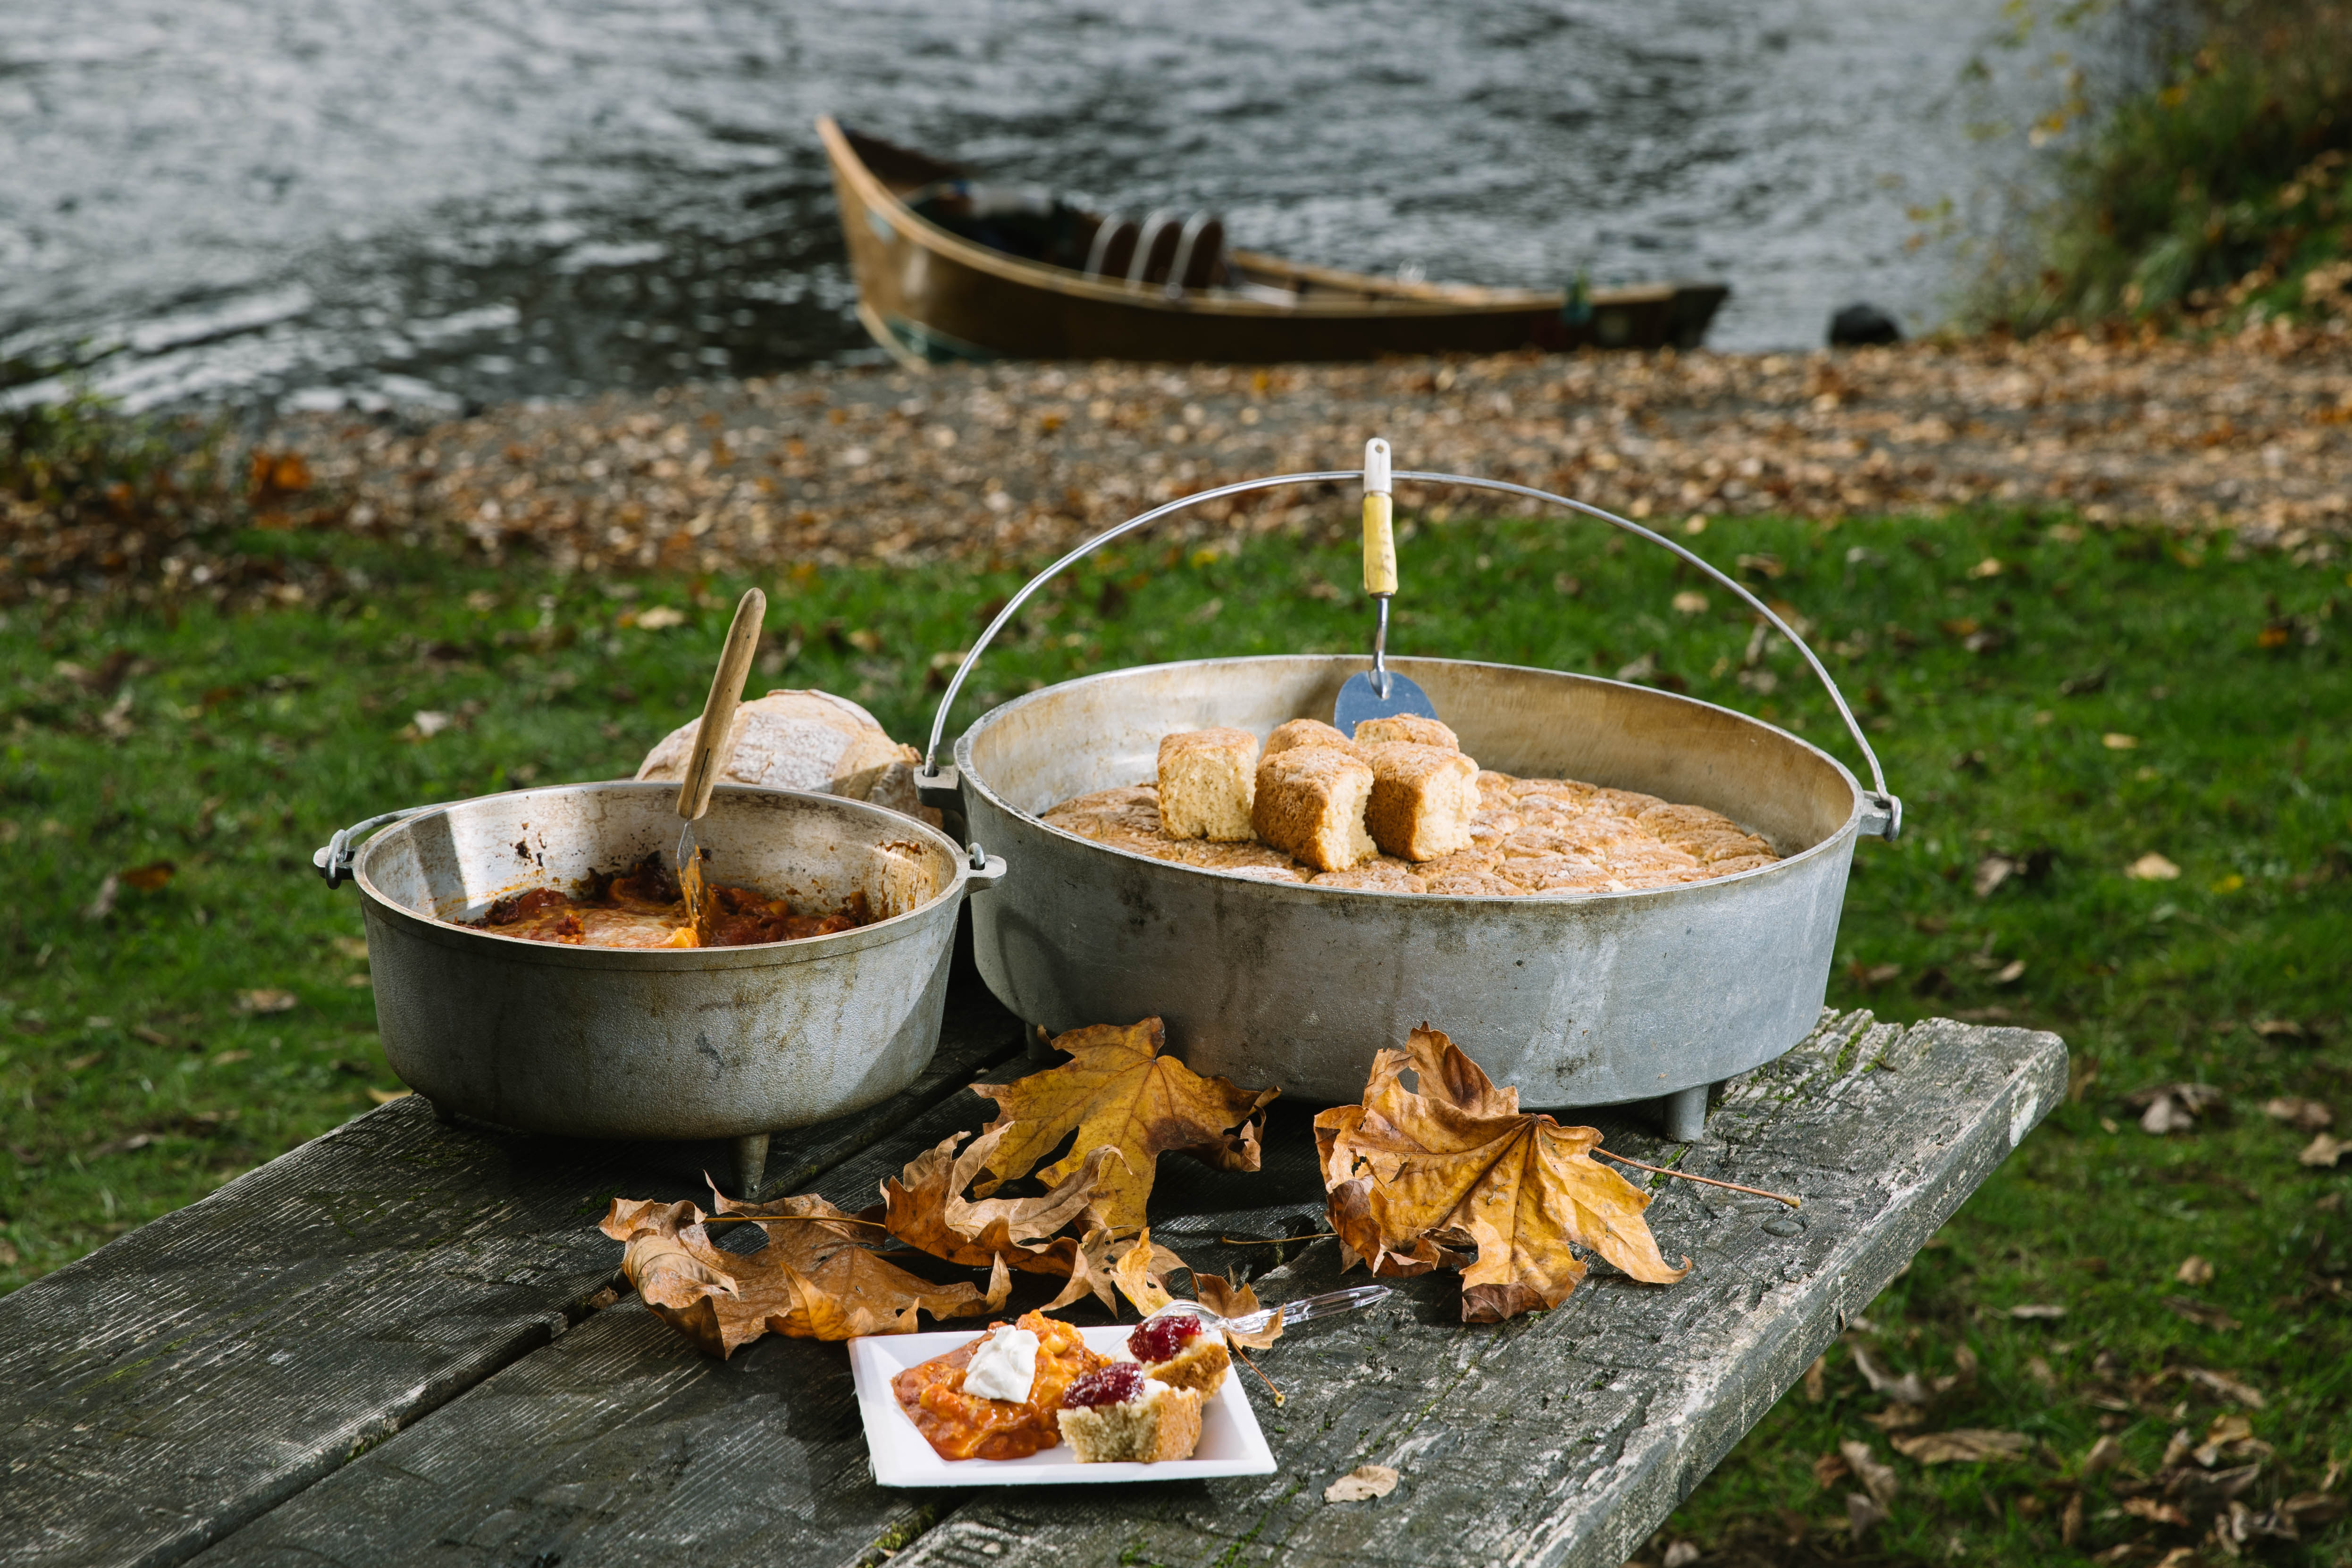 Billy's cast-iron Dutch Oven cooking